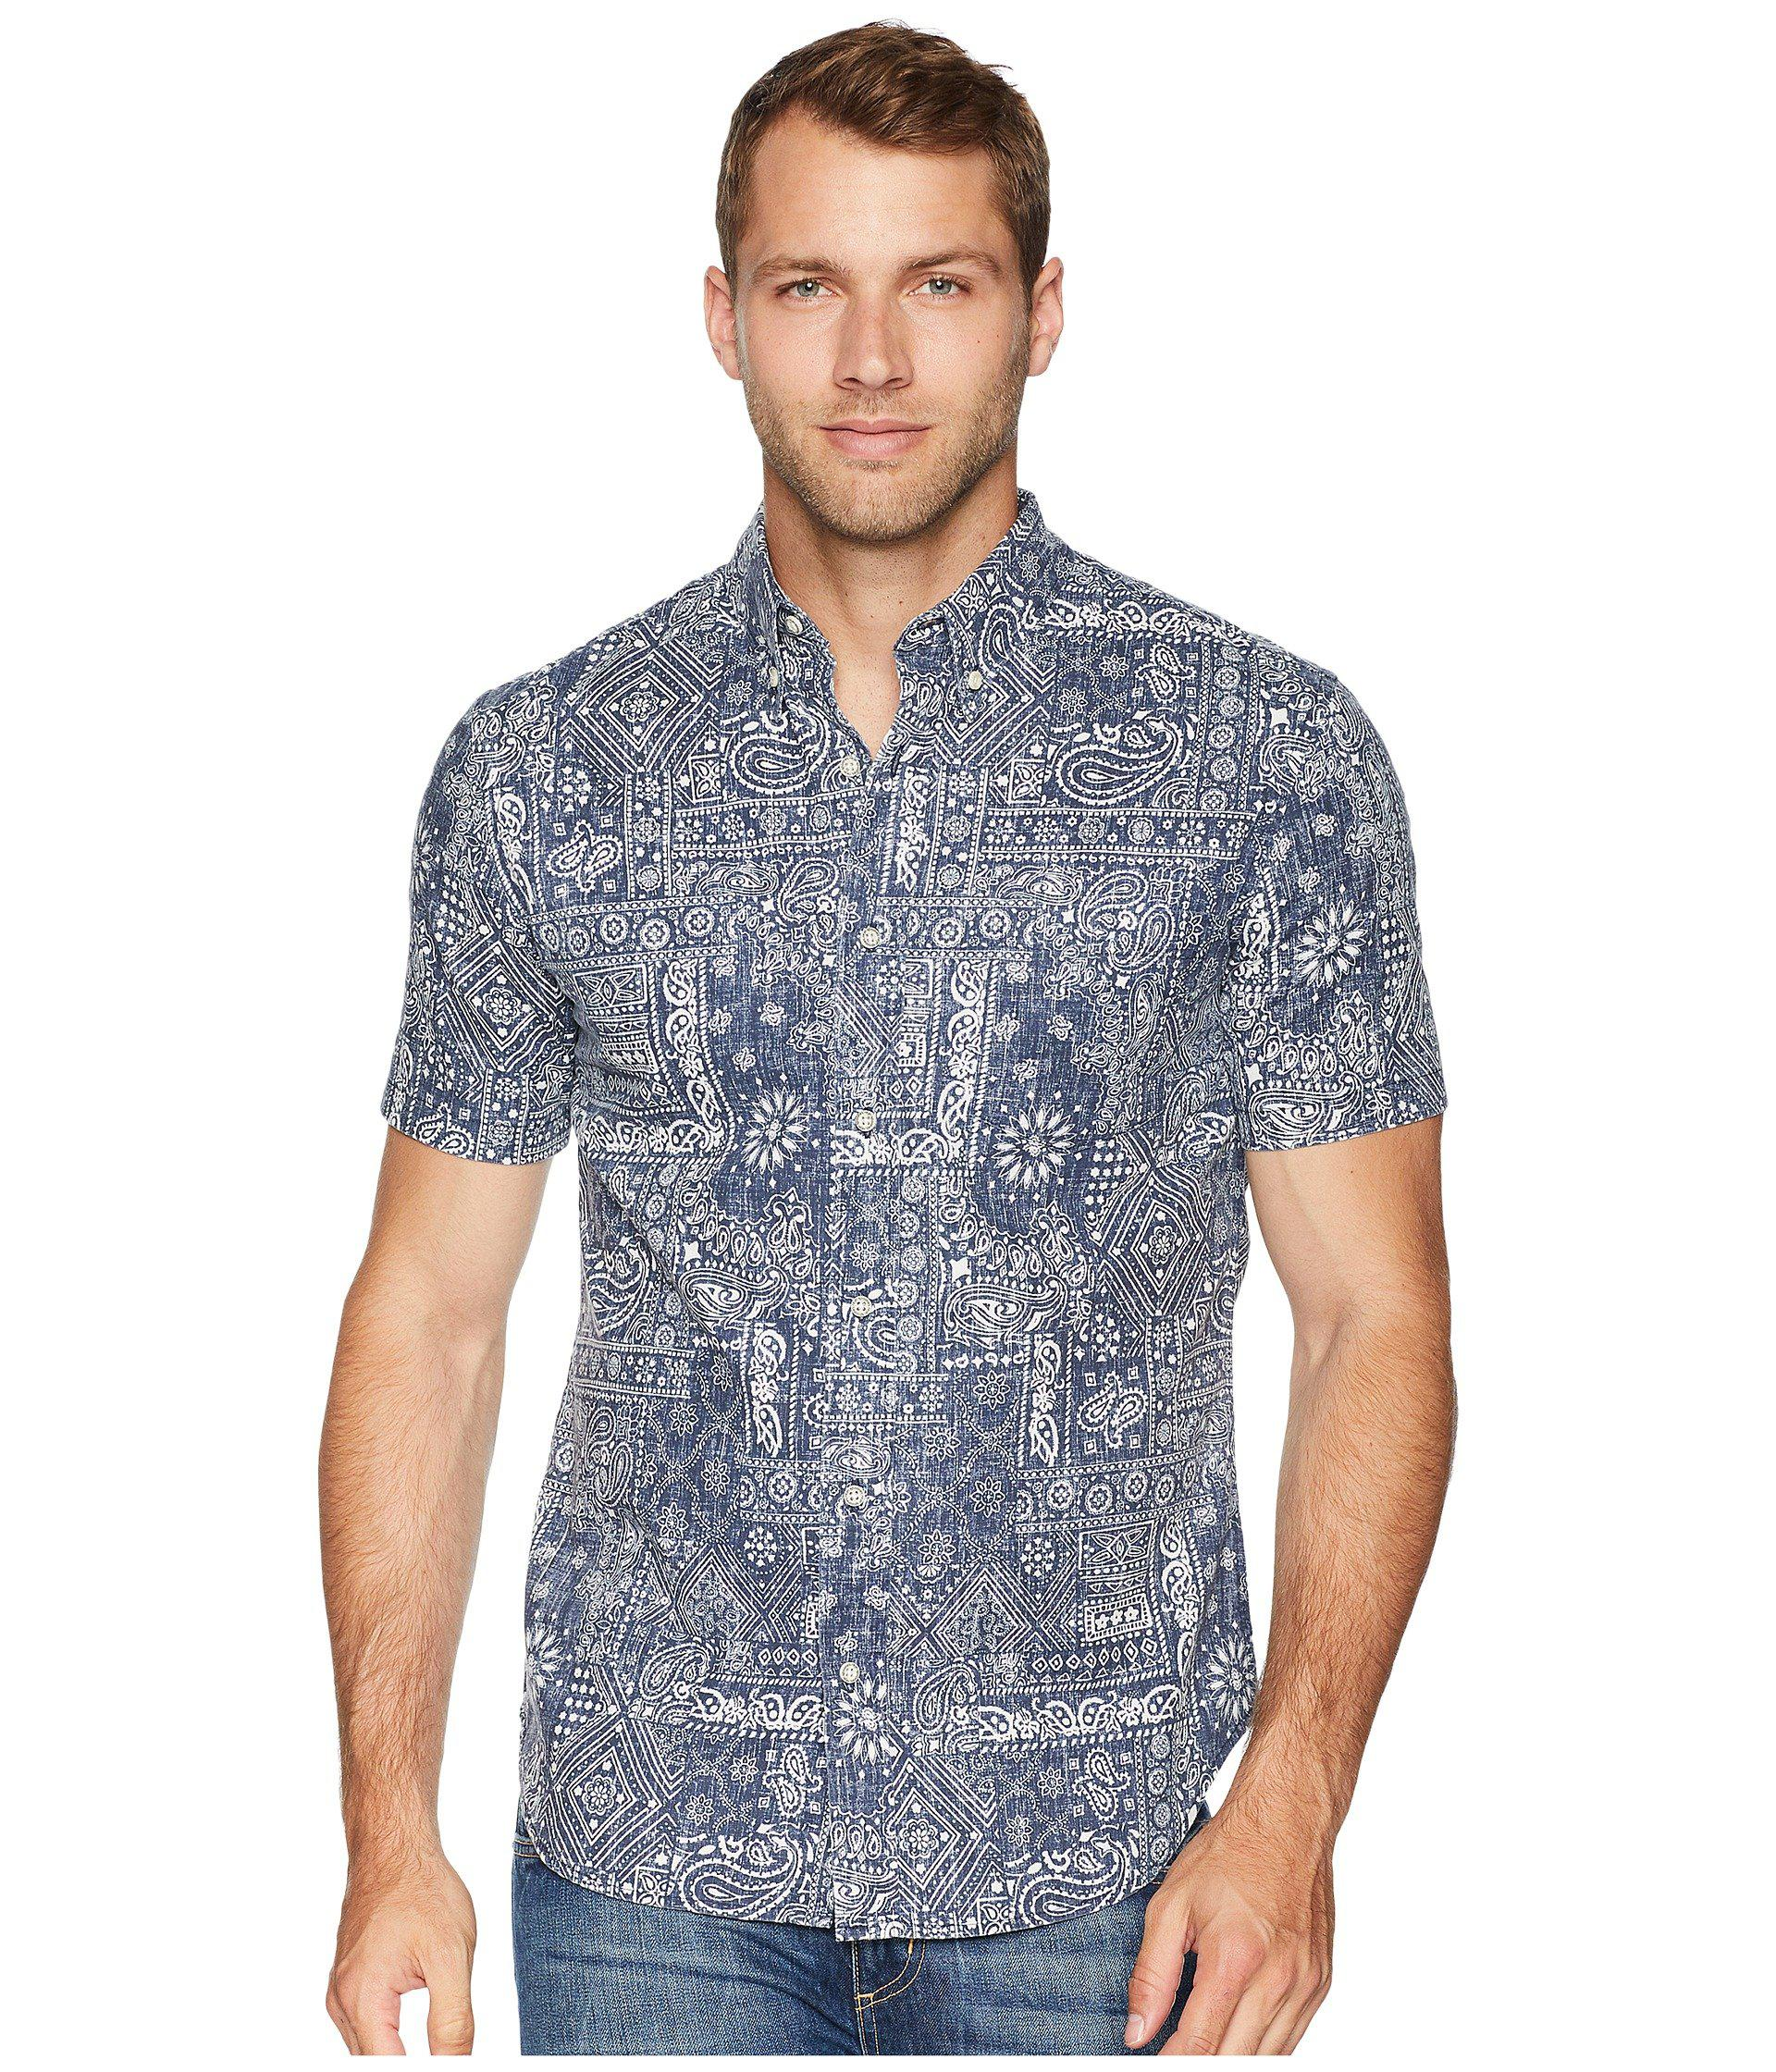 36a4cf0a9ed0 Lyst - Reyn Spooner Aloha Bandana Tailored Fit Hawaiian Shirt in ...